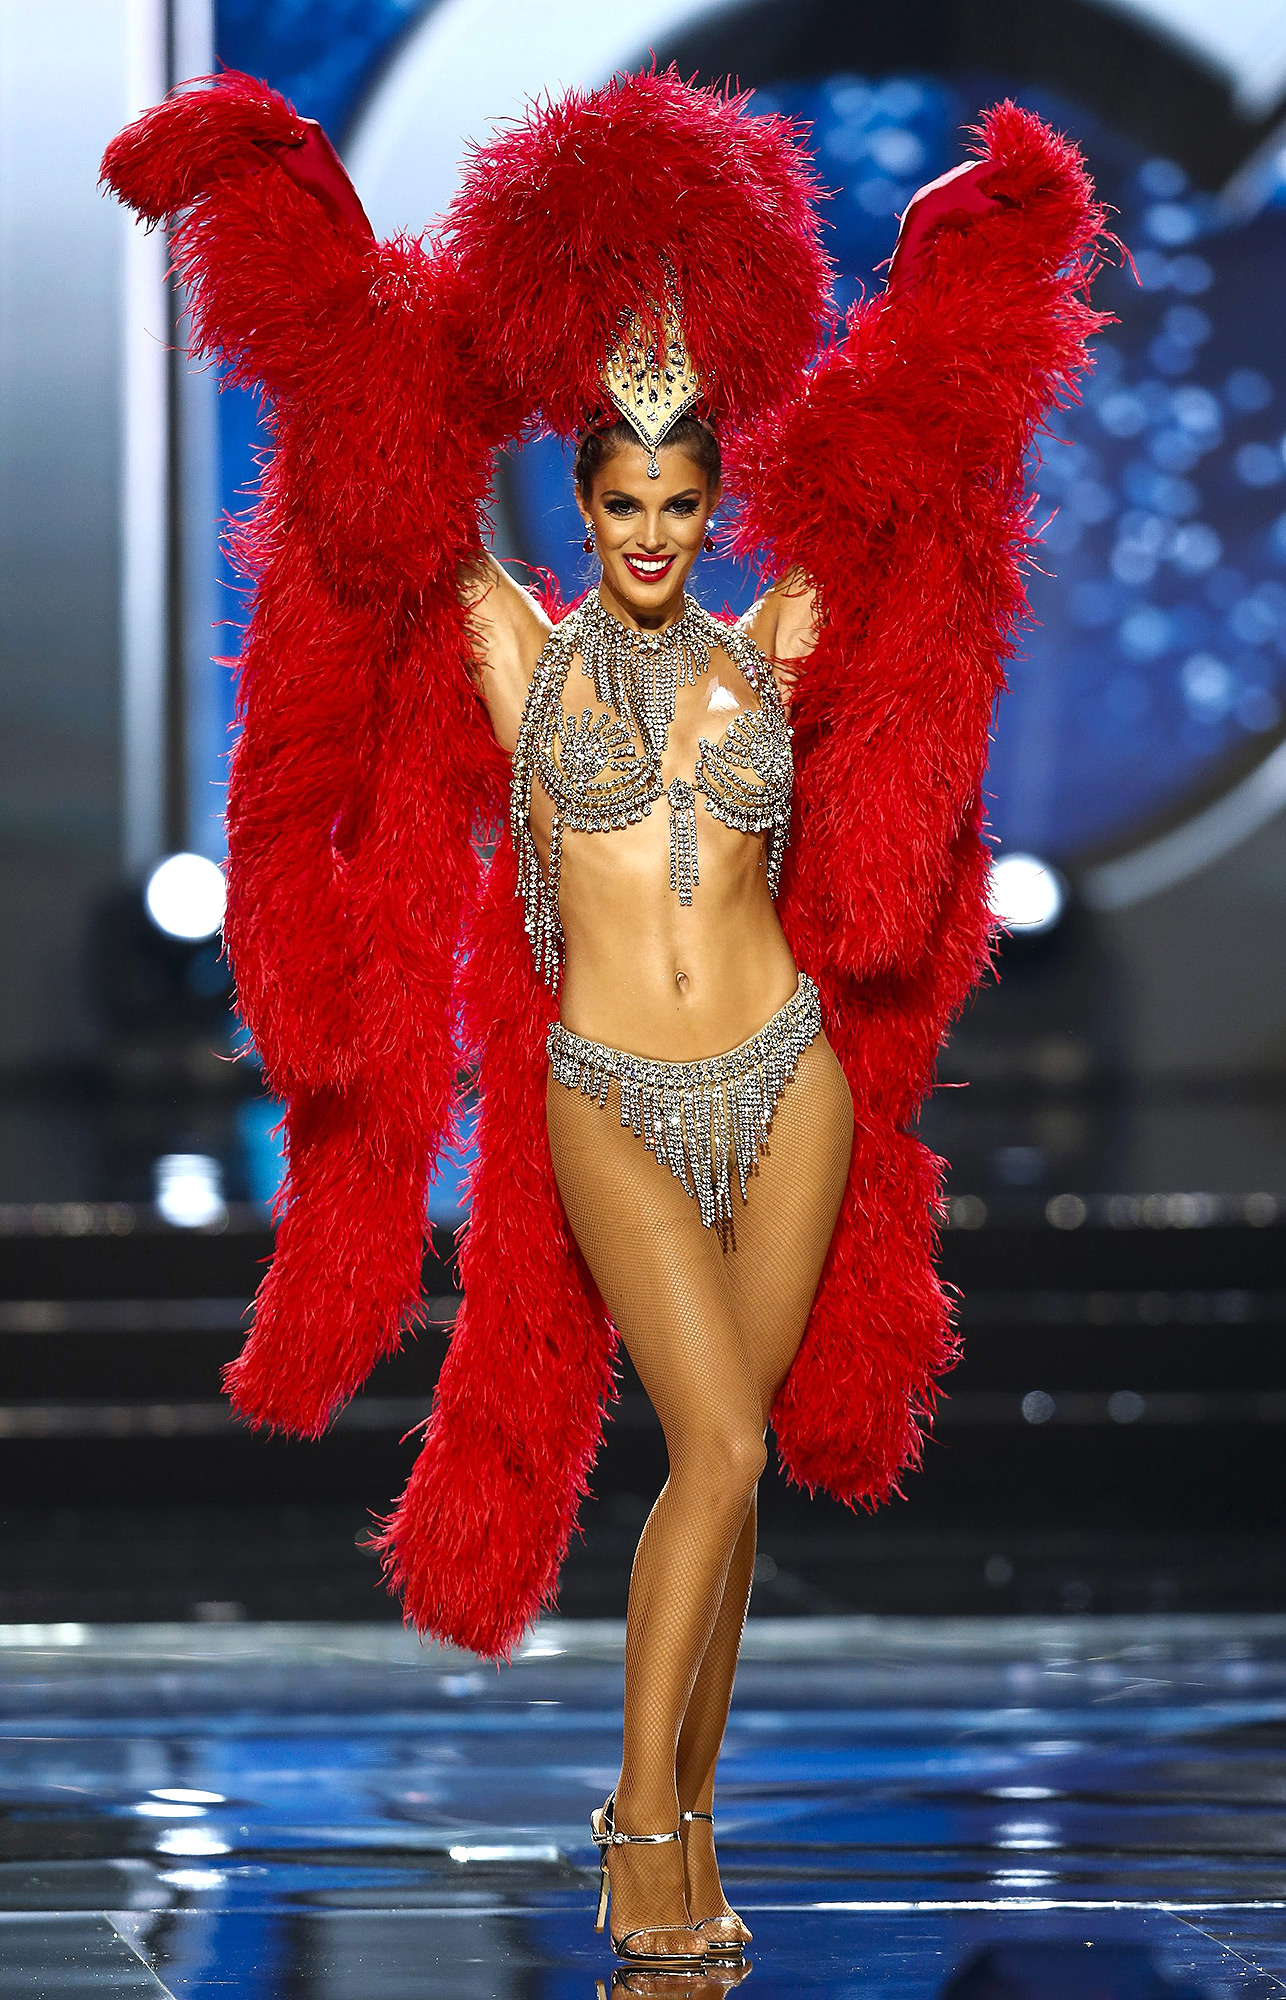 epa05752968 Miss Universe candidate Iris Mittenaere from France walks on stage in her national costume during the Miss Universe preliminary show at the Mall of Asia Arena in Pasay City, south of Manila, Philippines 26 January 2017. A total of 86 candidates are vying for the 65th Miss Universe crown, with the coronation event scheduled for 30 January.  EPA/ROLEX DELA PENA EPA  ROL35 PHILIPPINES MISS UNIVERSE